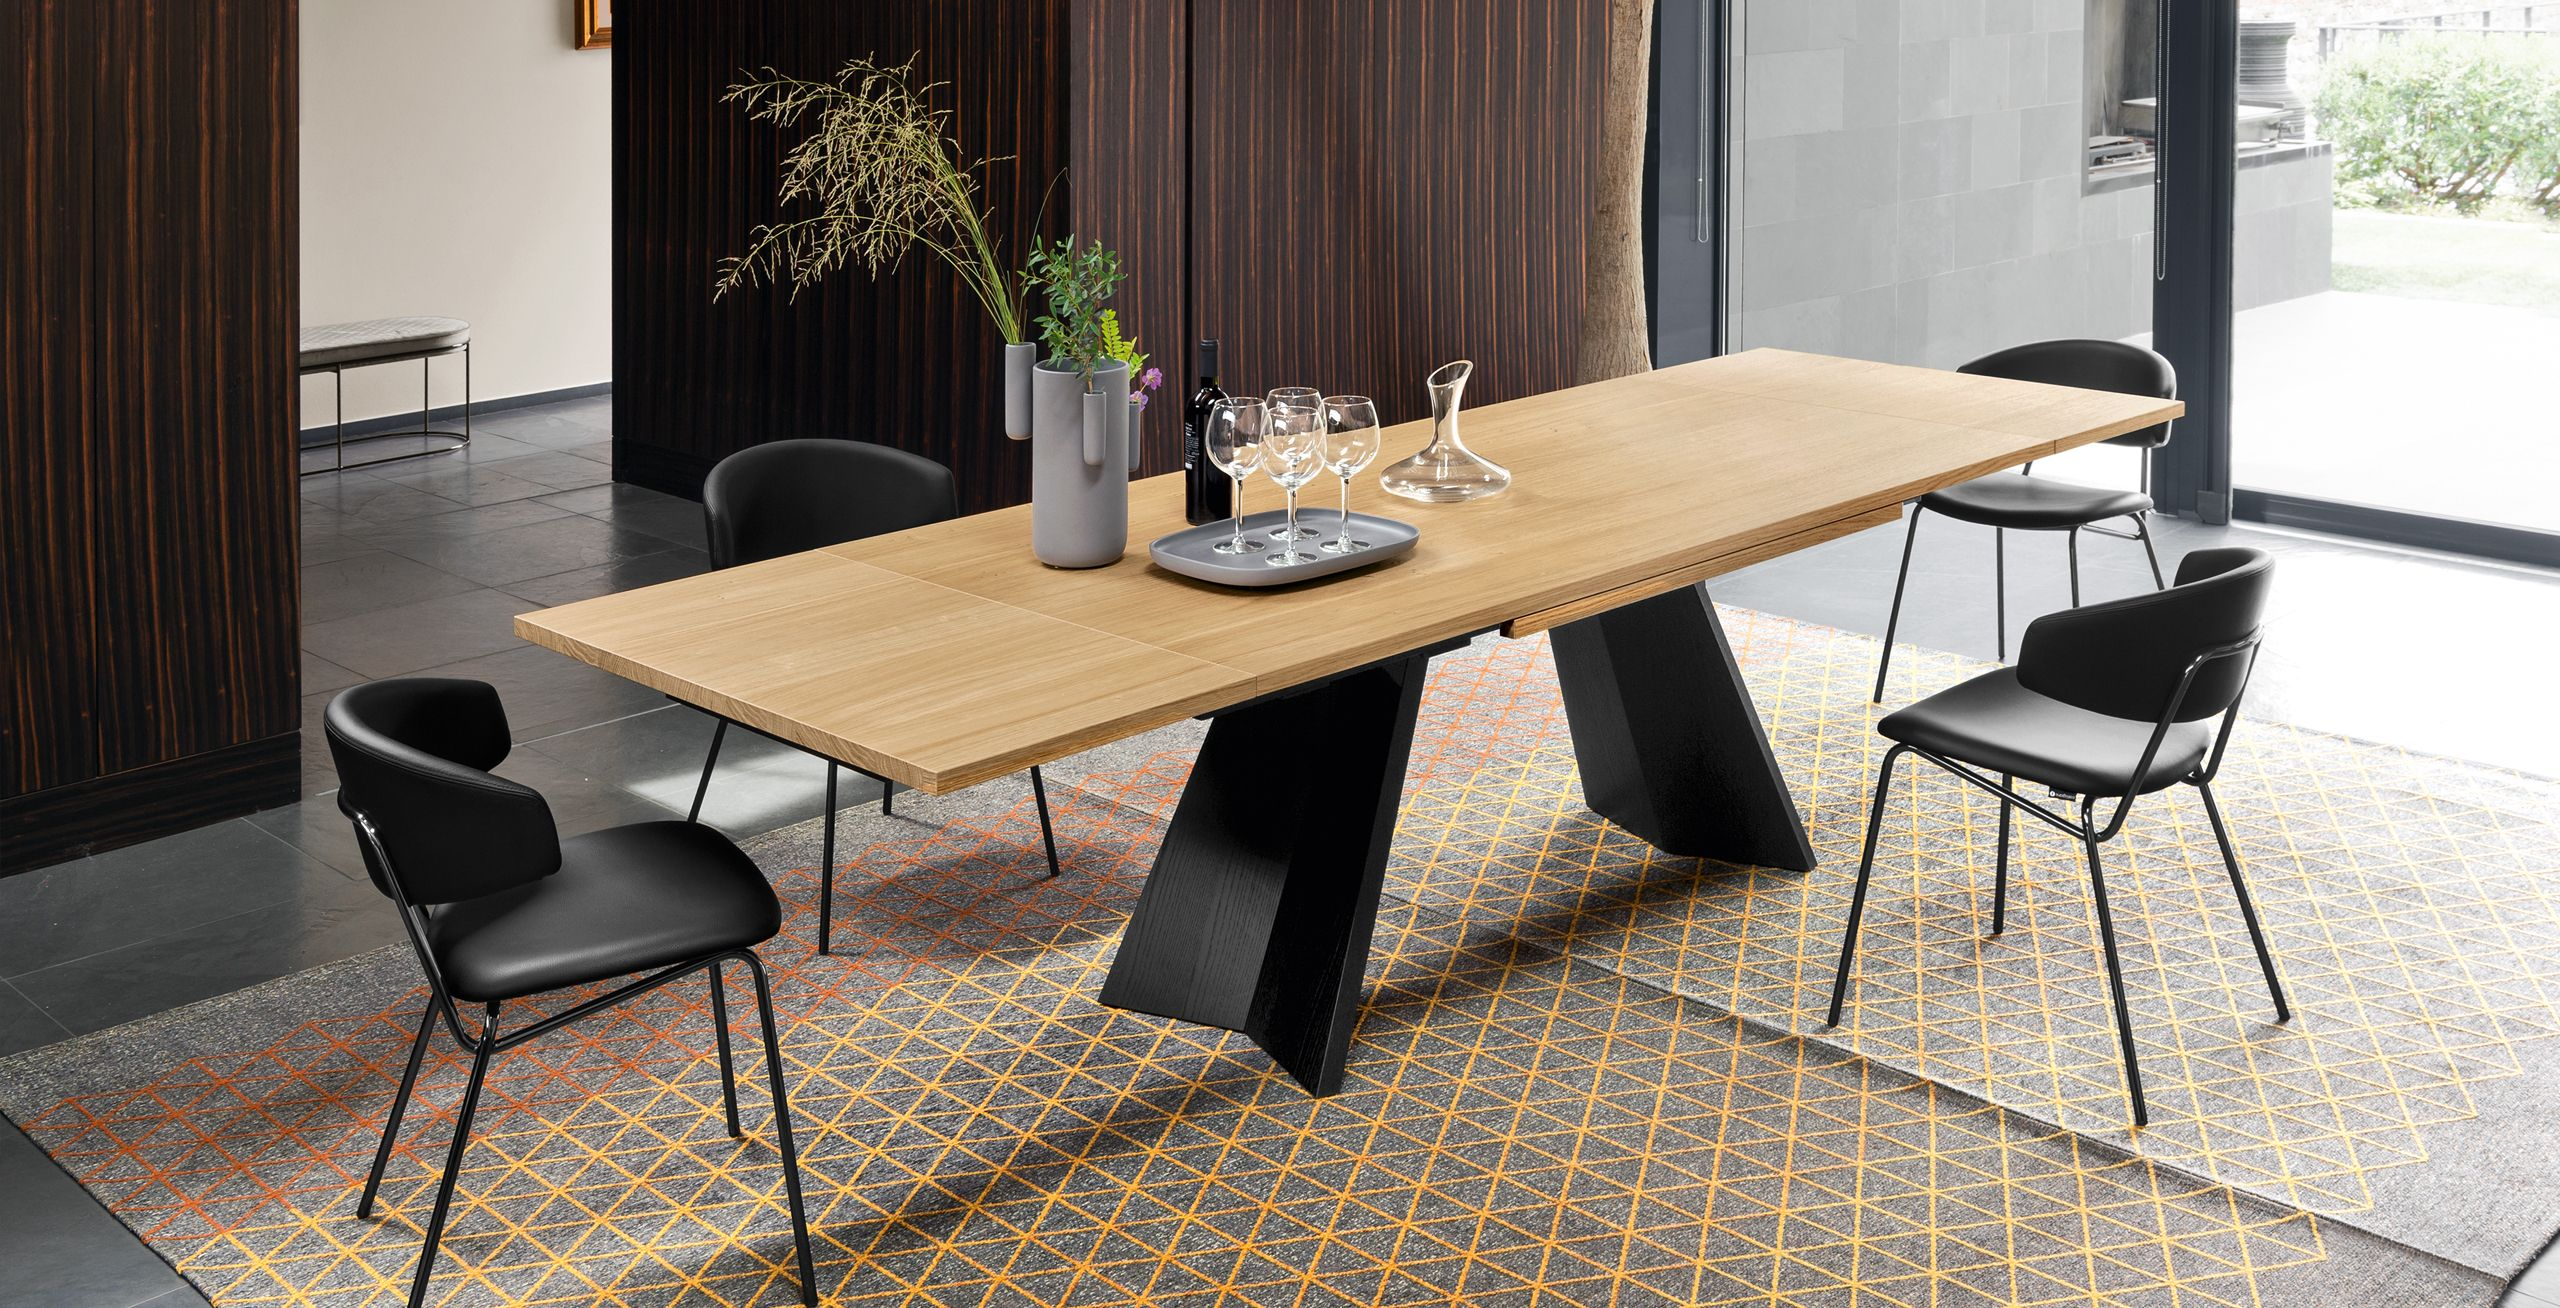 Extending Dining Table With Structural Base Calligaris Wooden